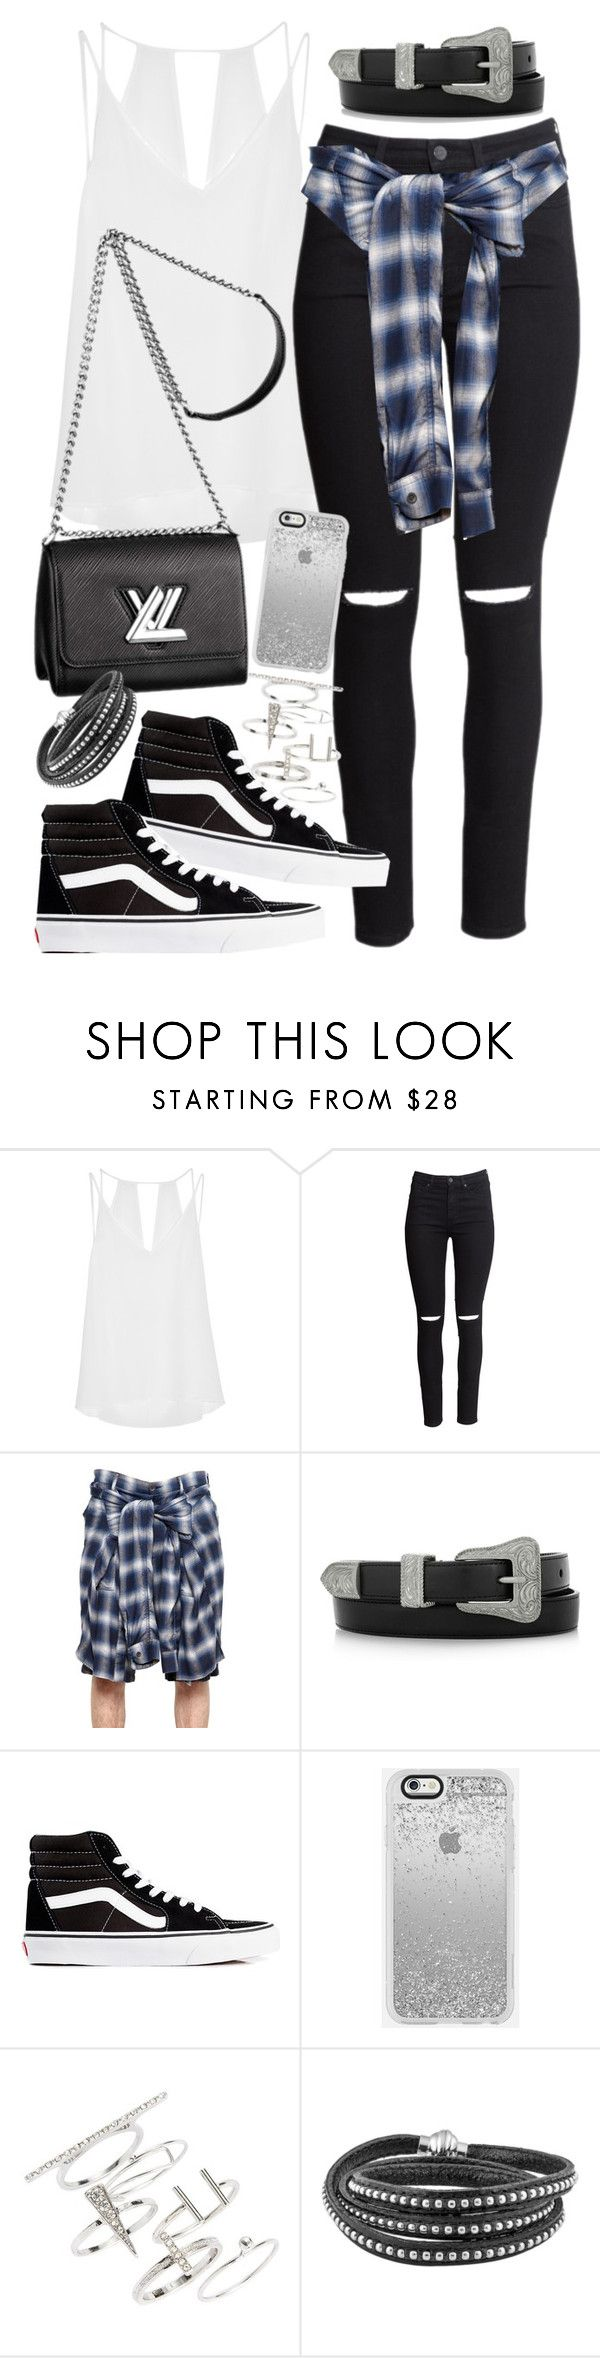 """""""Outfit for a campus tour with Vans"""" by ferned ❤ liked on Polyvore featuring Sandro, H&M, Miharayasuhiro, Yves Saint Laurent, Vans, Louis Vuitton and Topshop"""